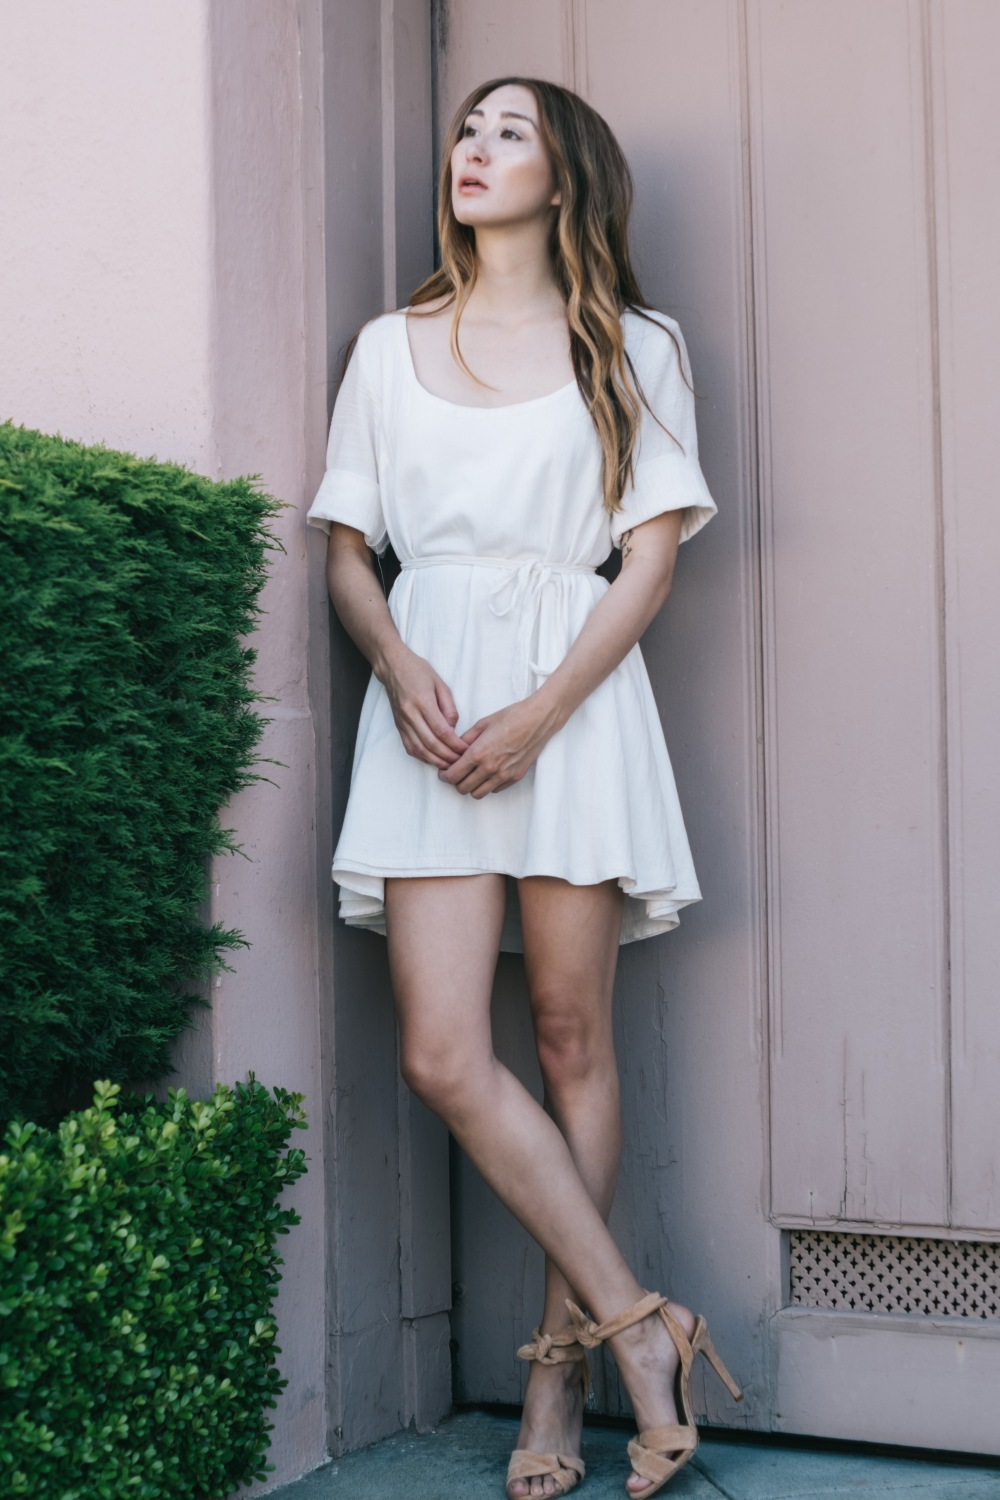 White Heat Alyssa Nicole Kylie Dress San Francisco Marina District1618